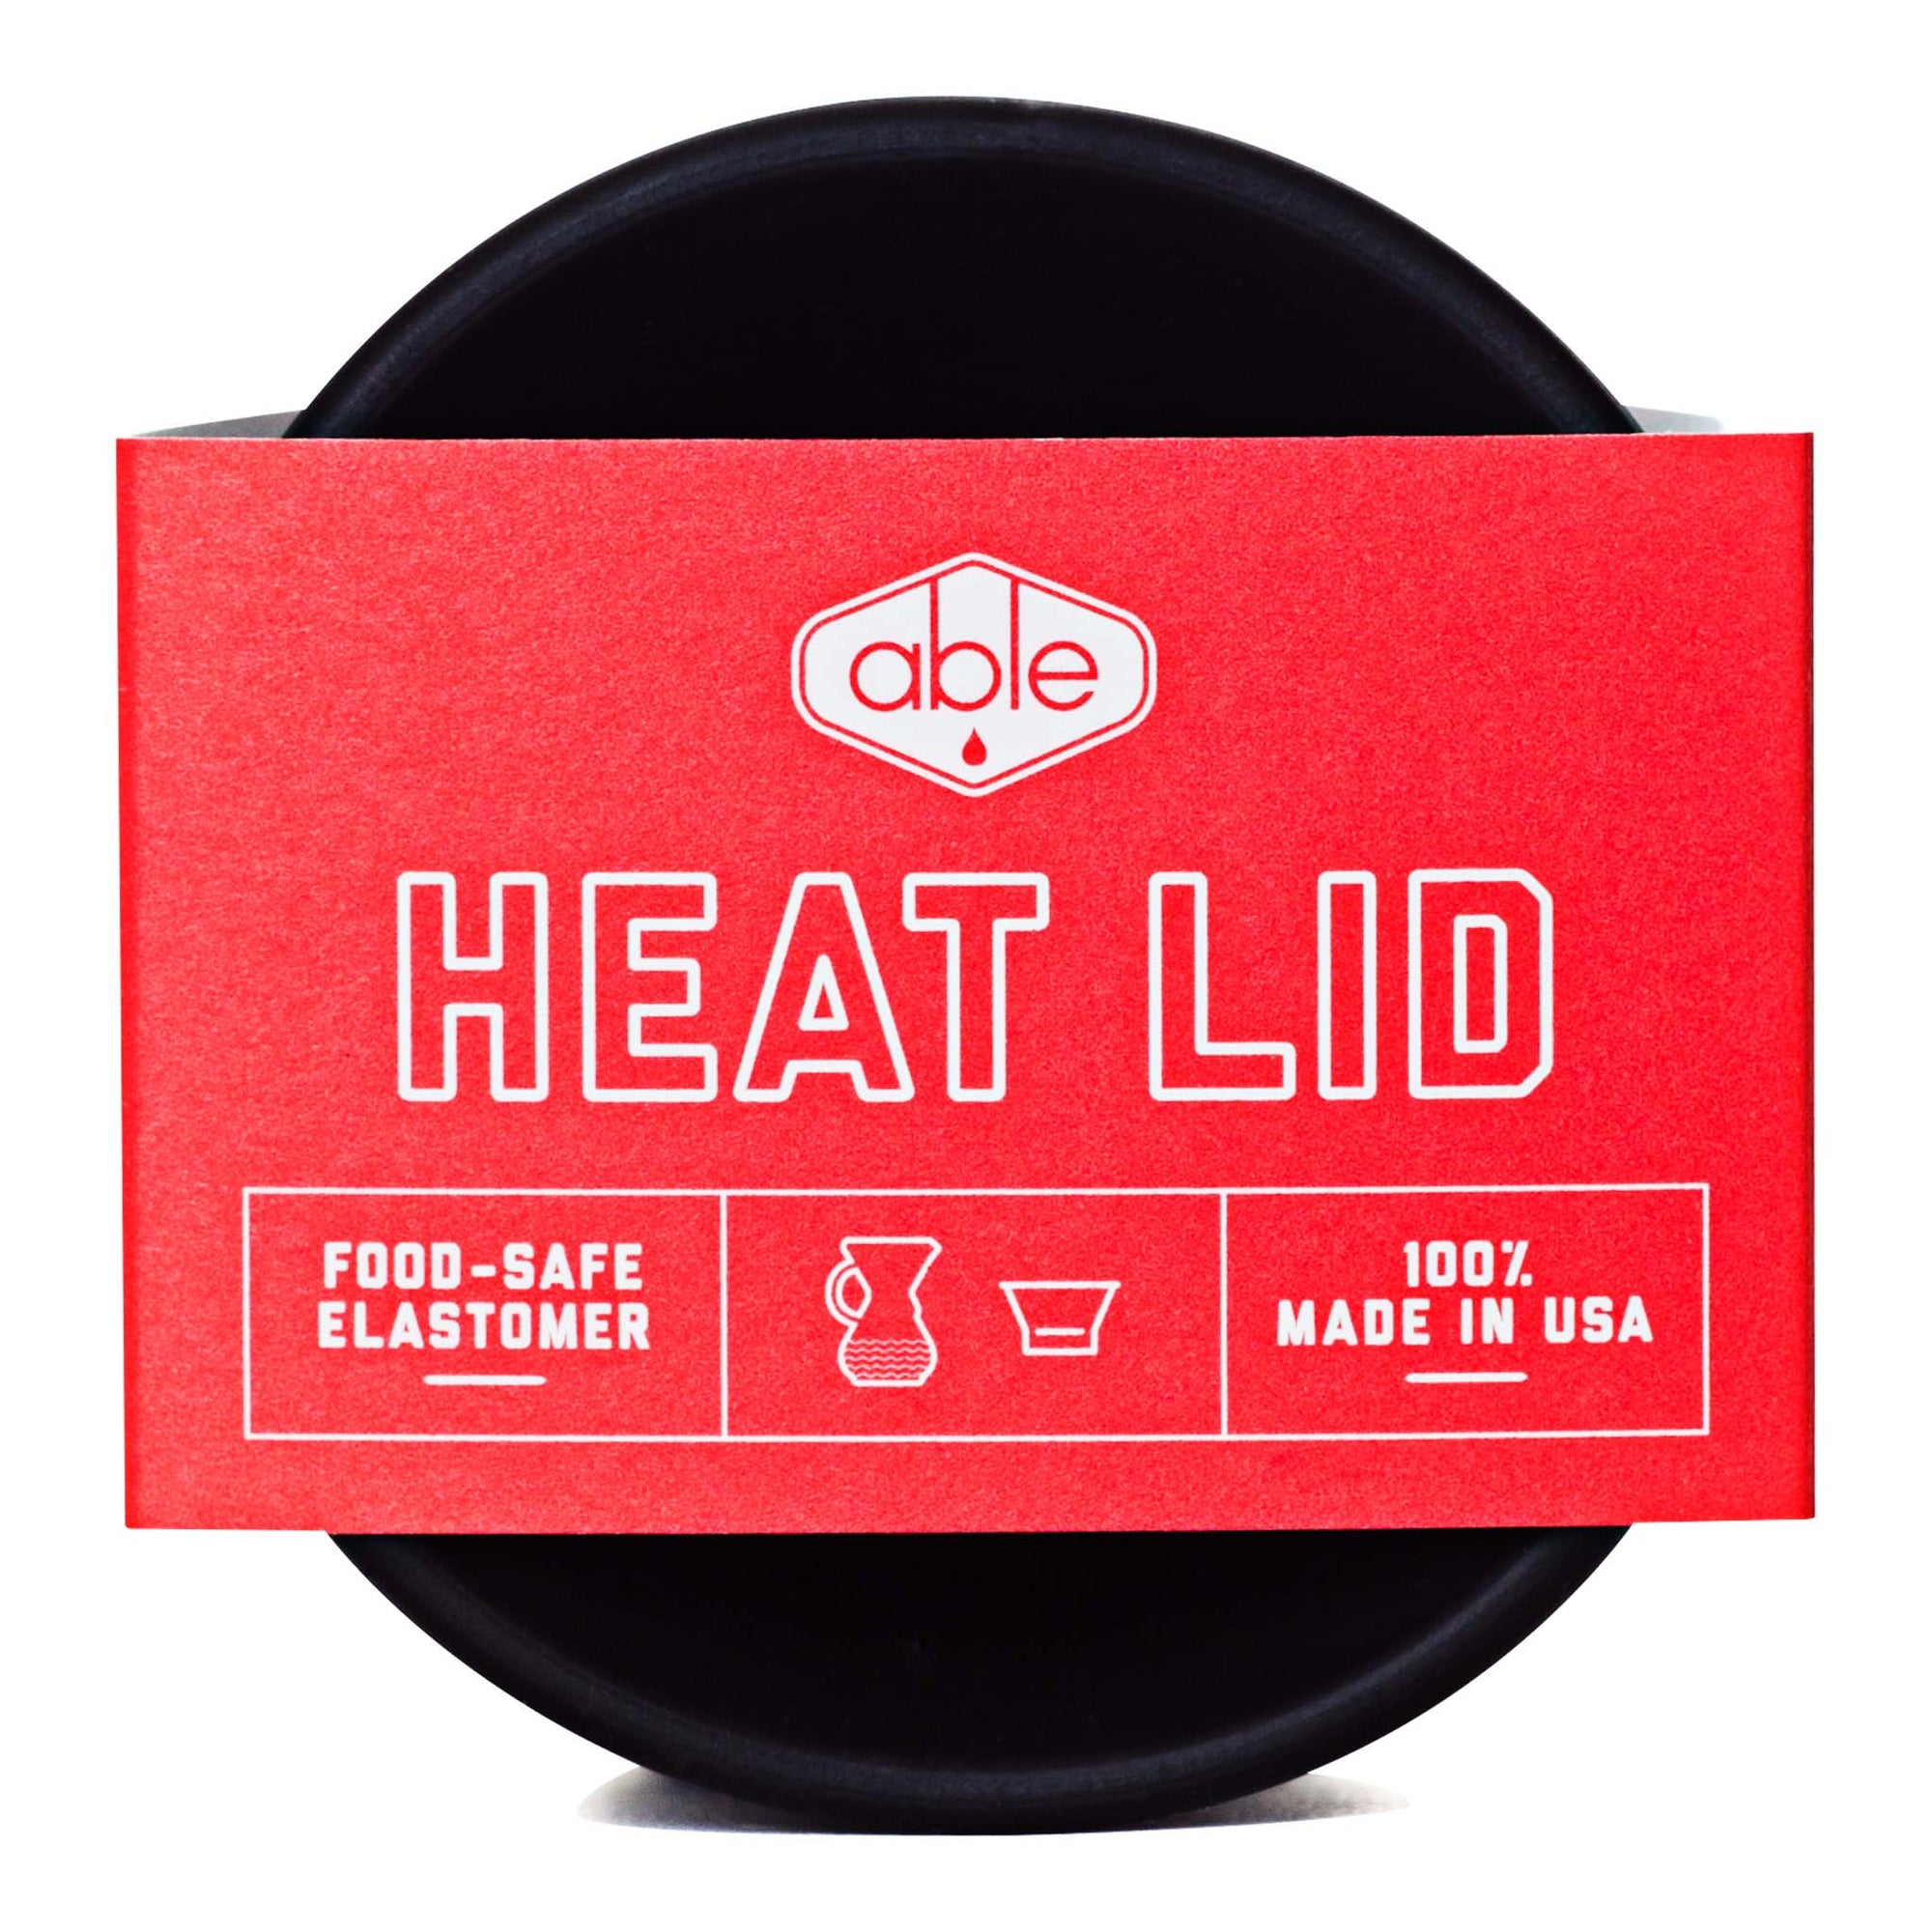 Heat Lid - Black - Able - Espresso Gear